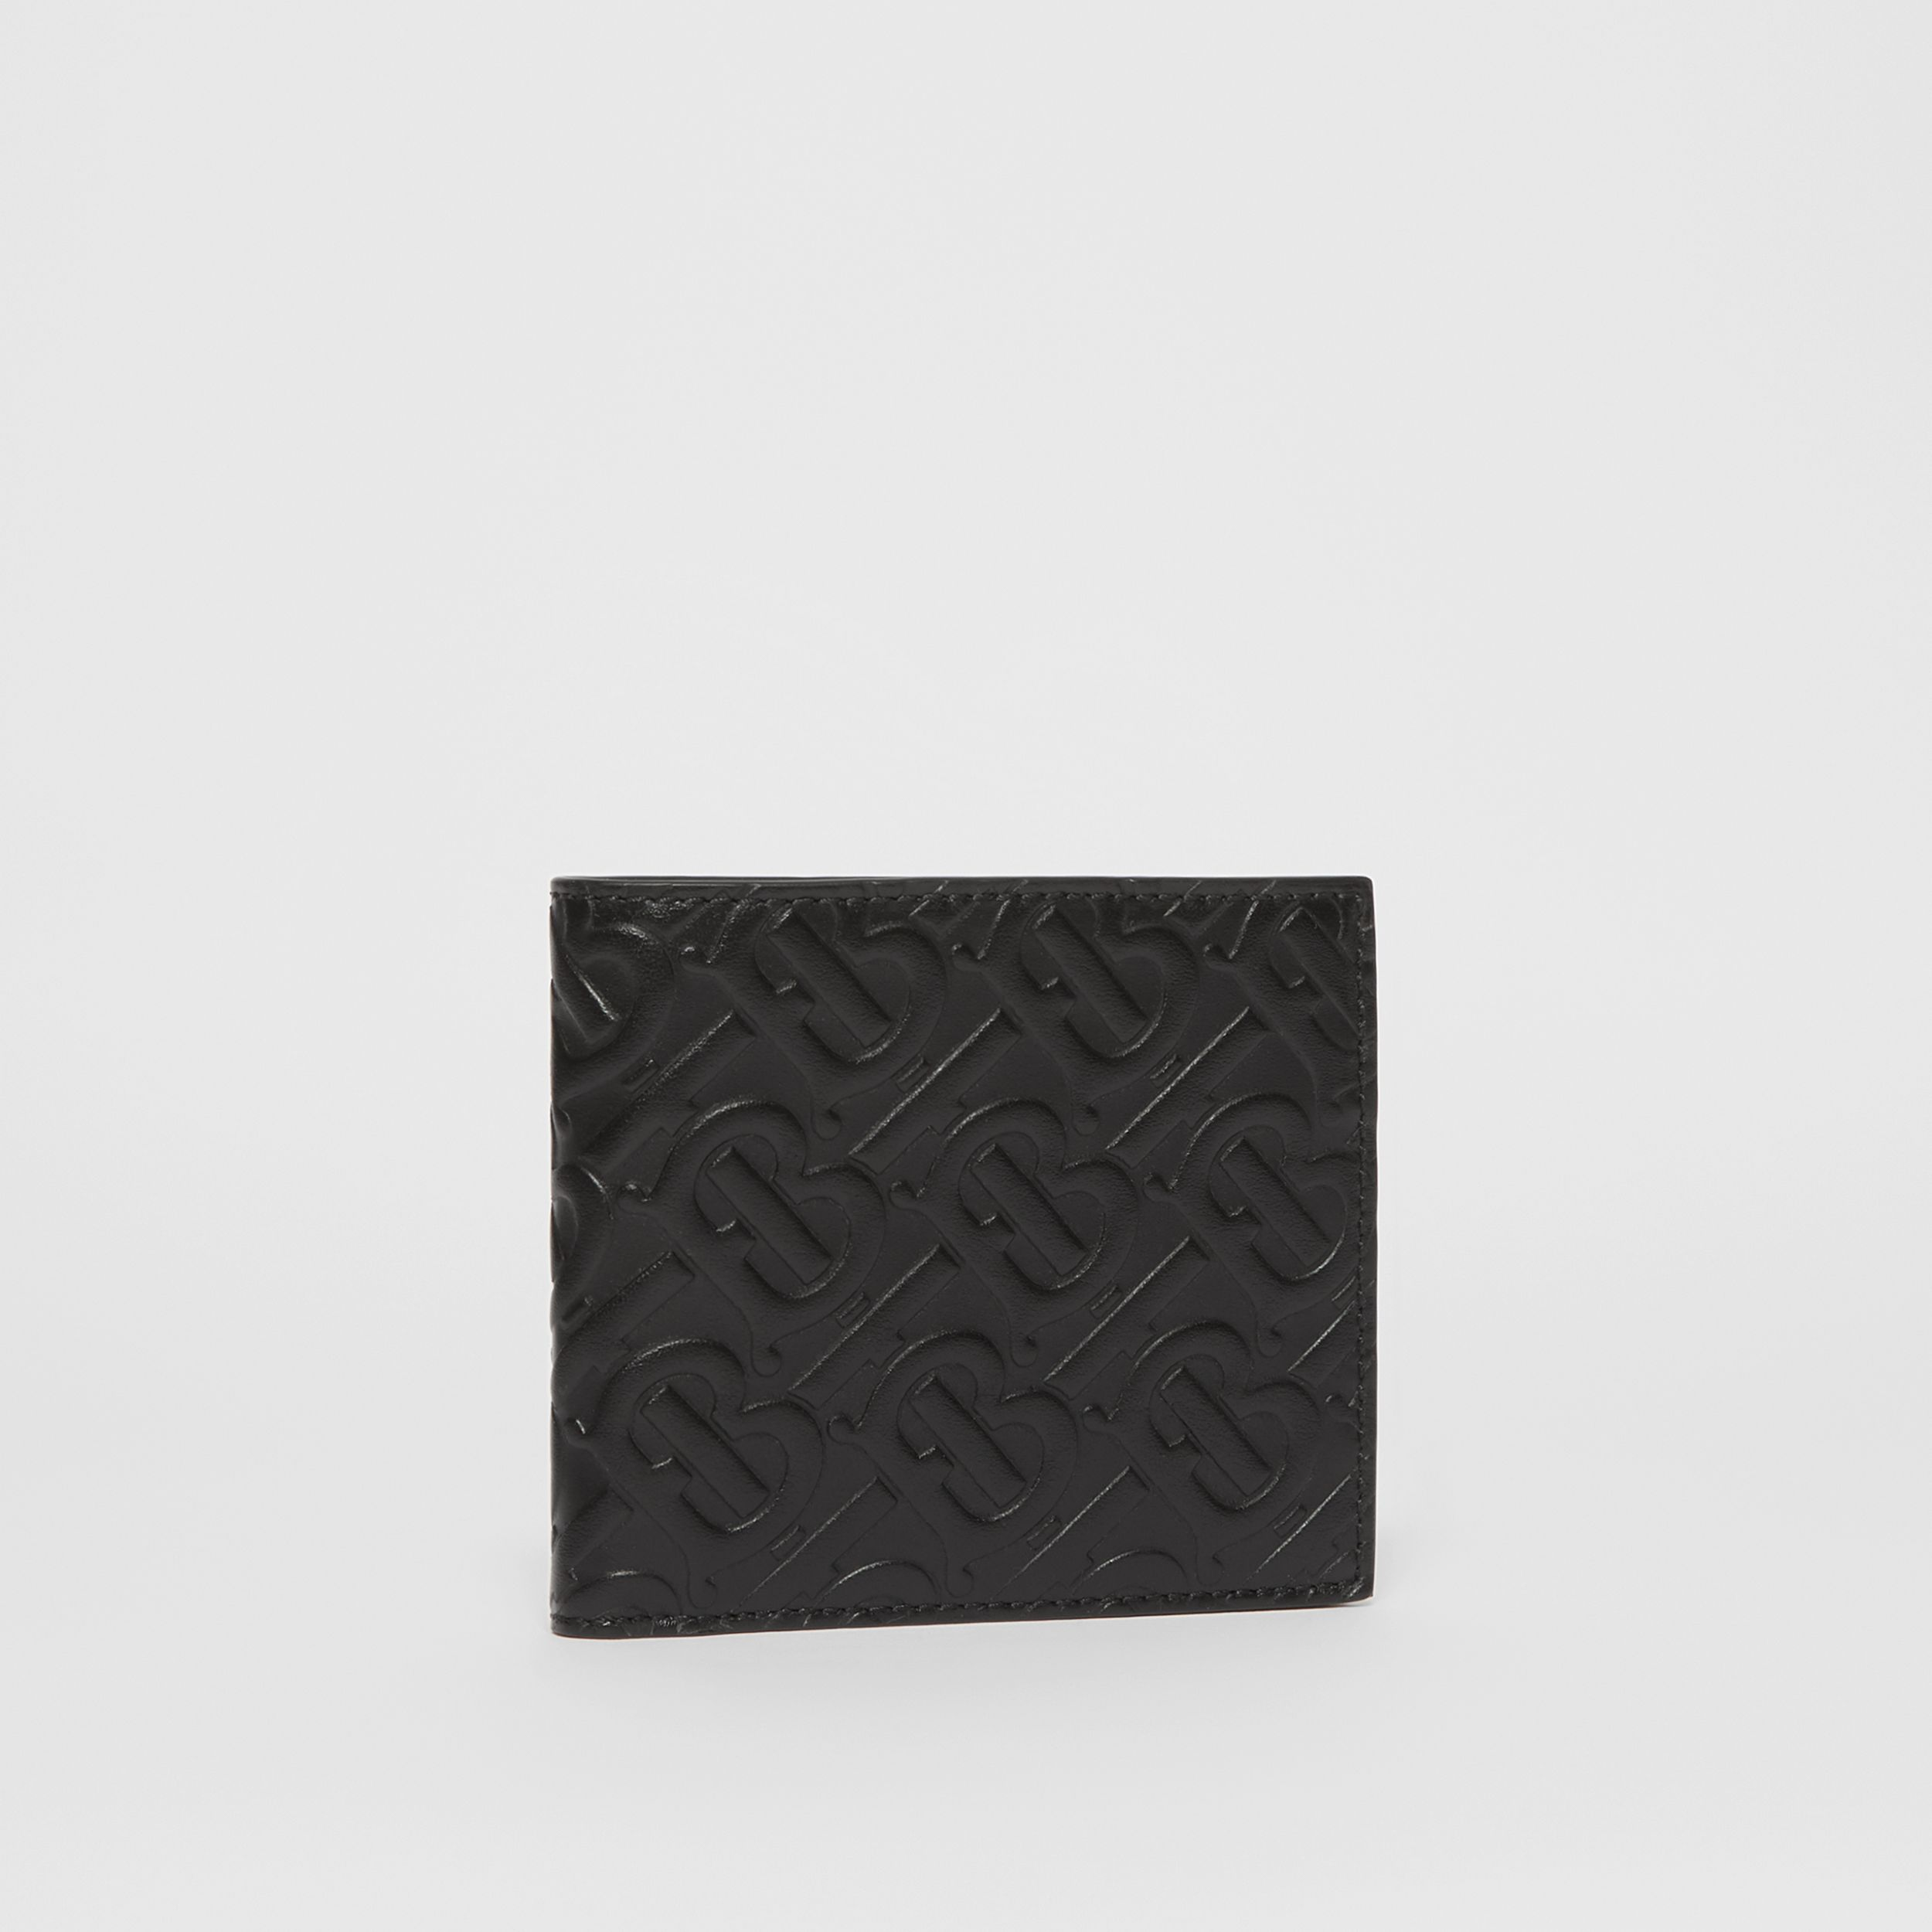 Monogram Leather International Bifold Wallet in Black - Men | Burberry - 4